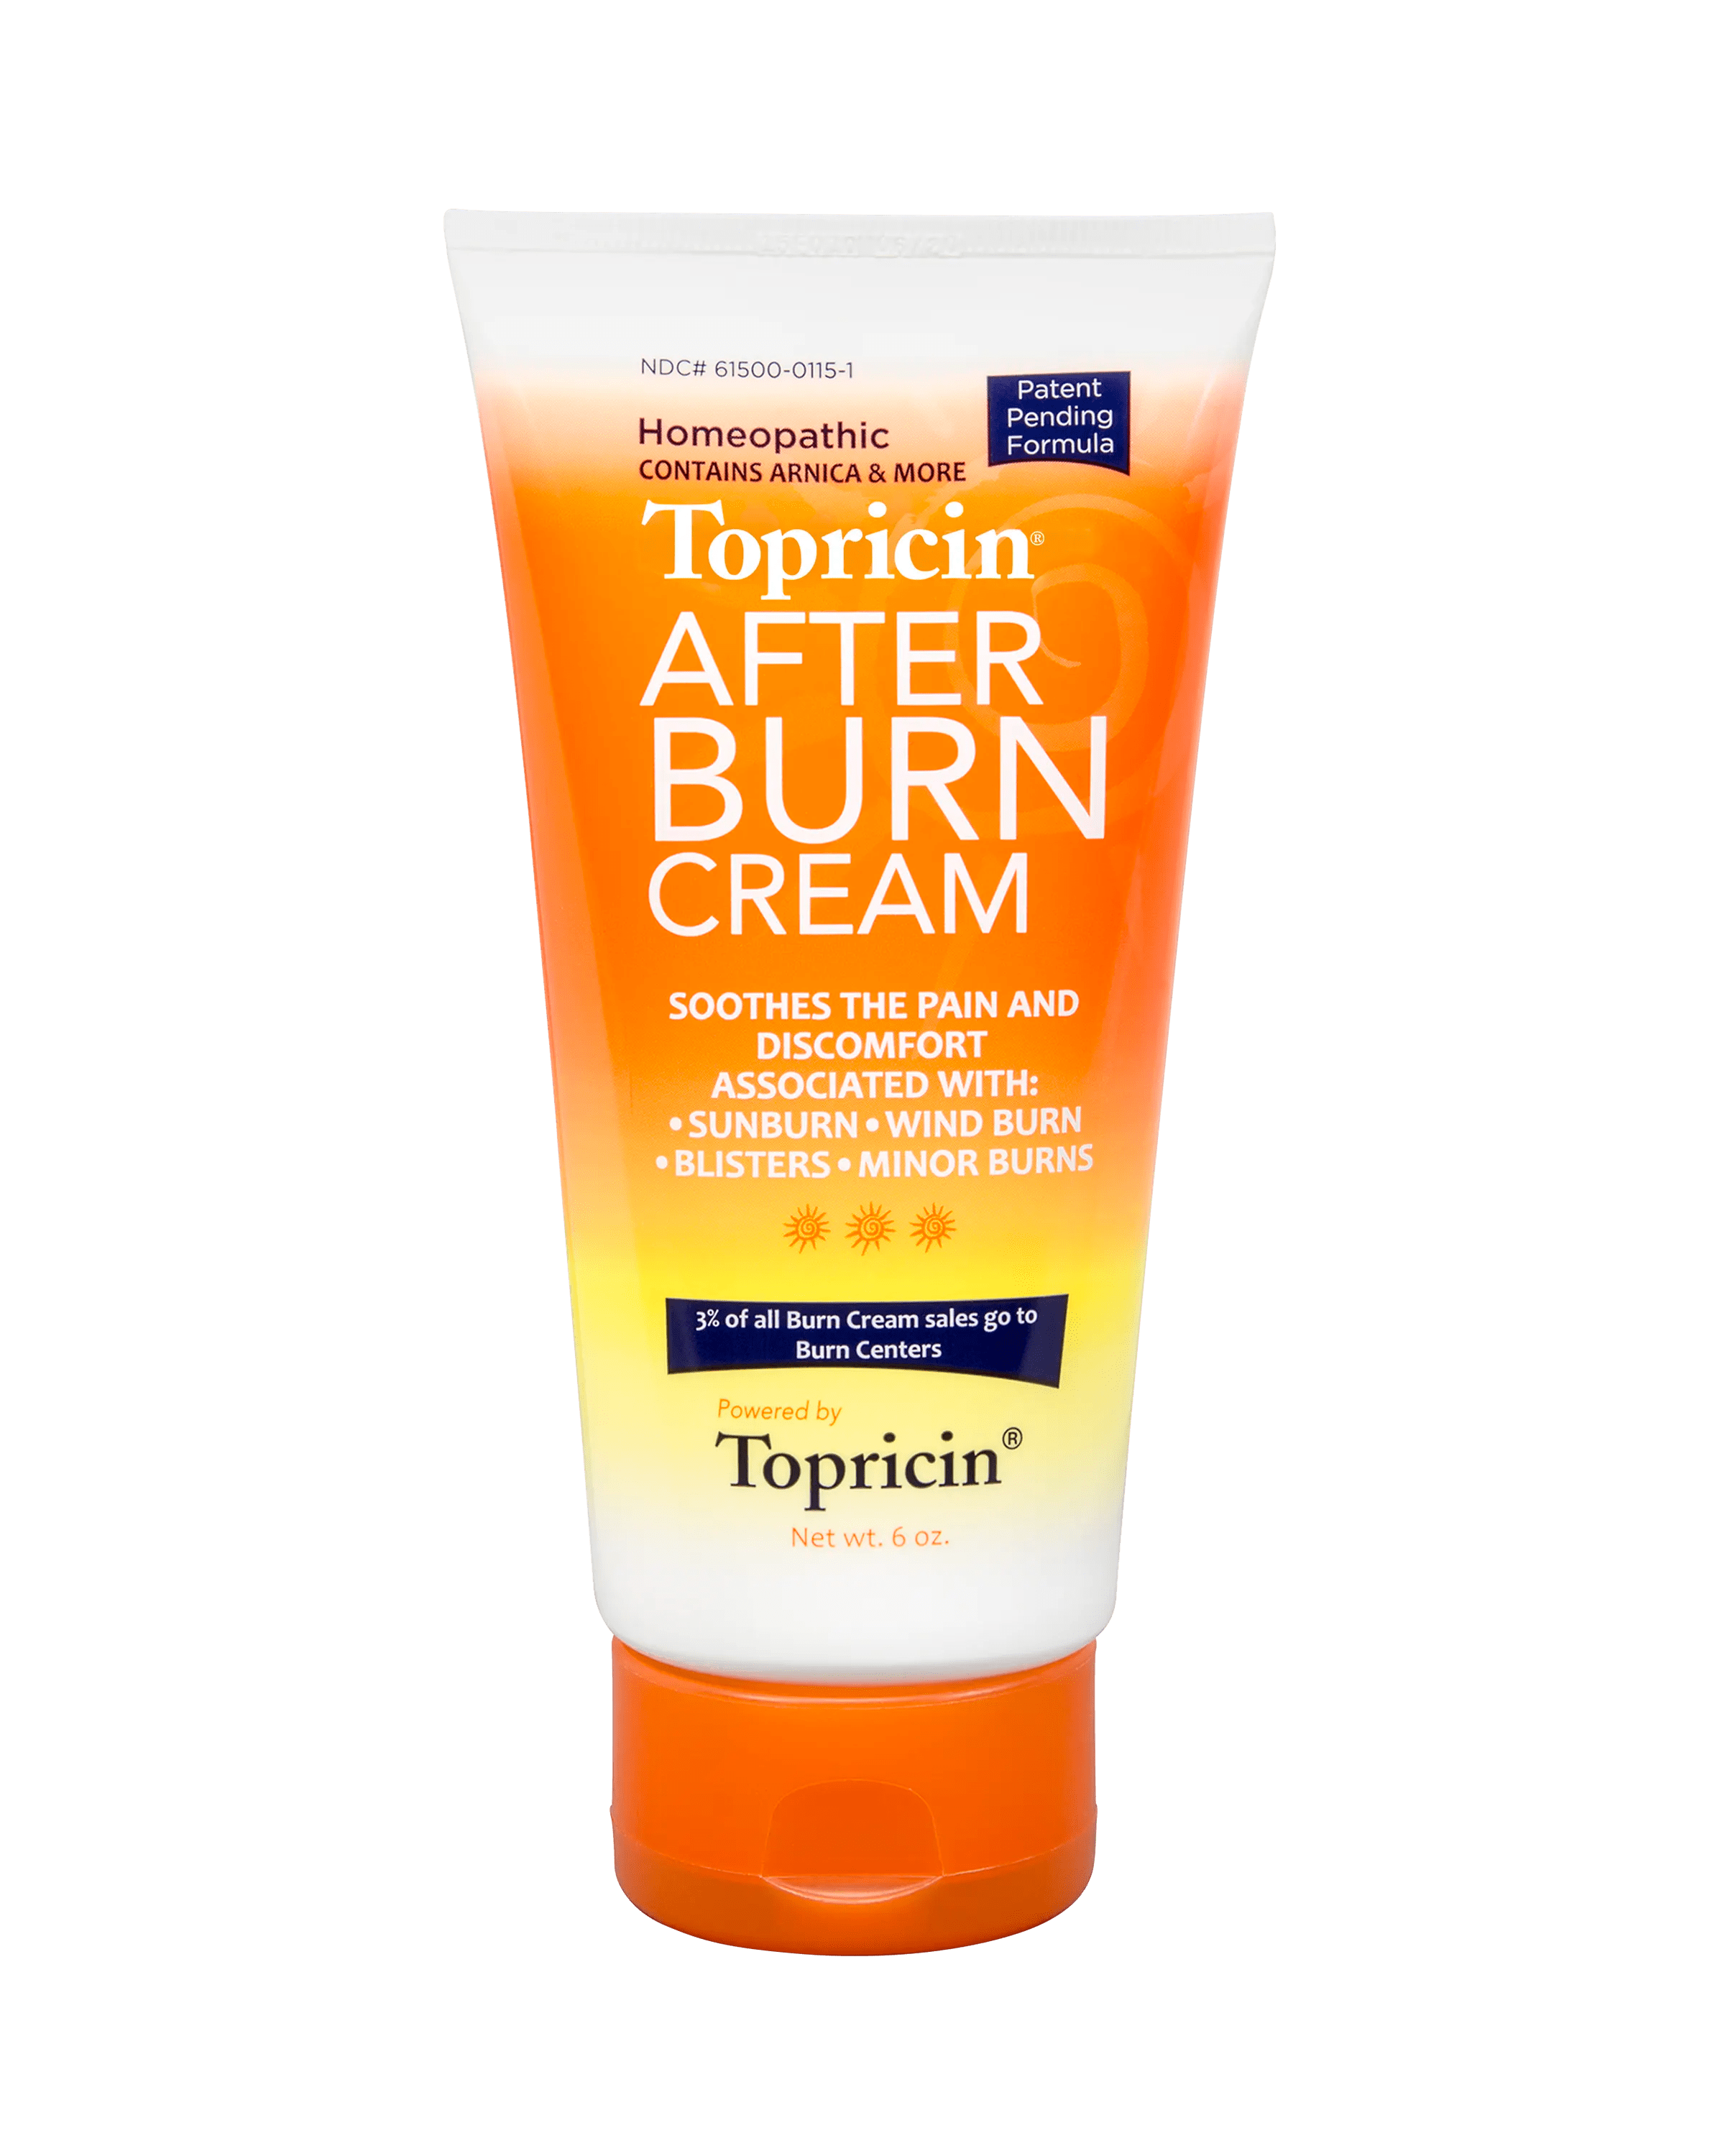 Product Ingredients – Topricin